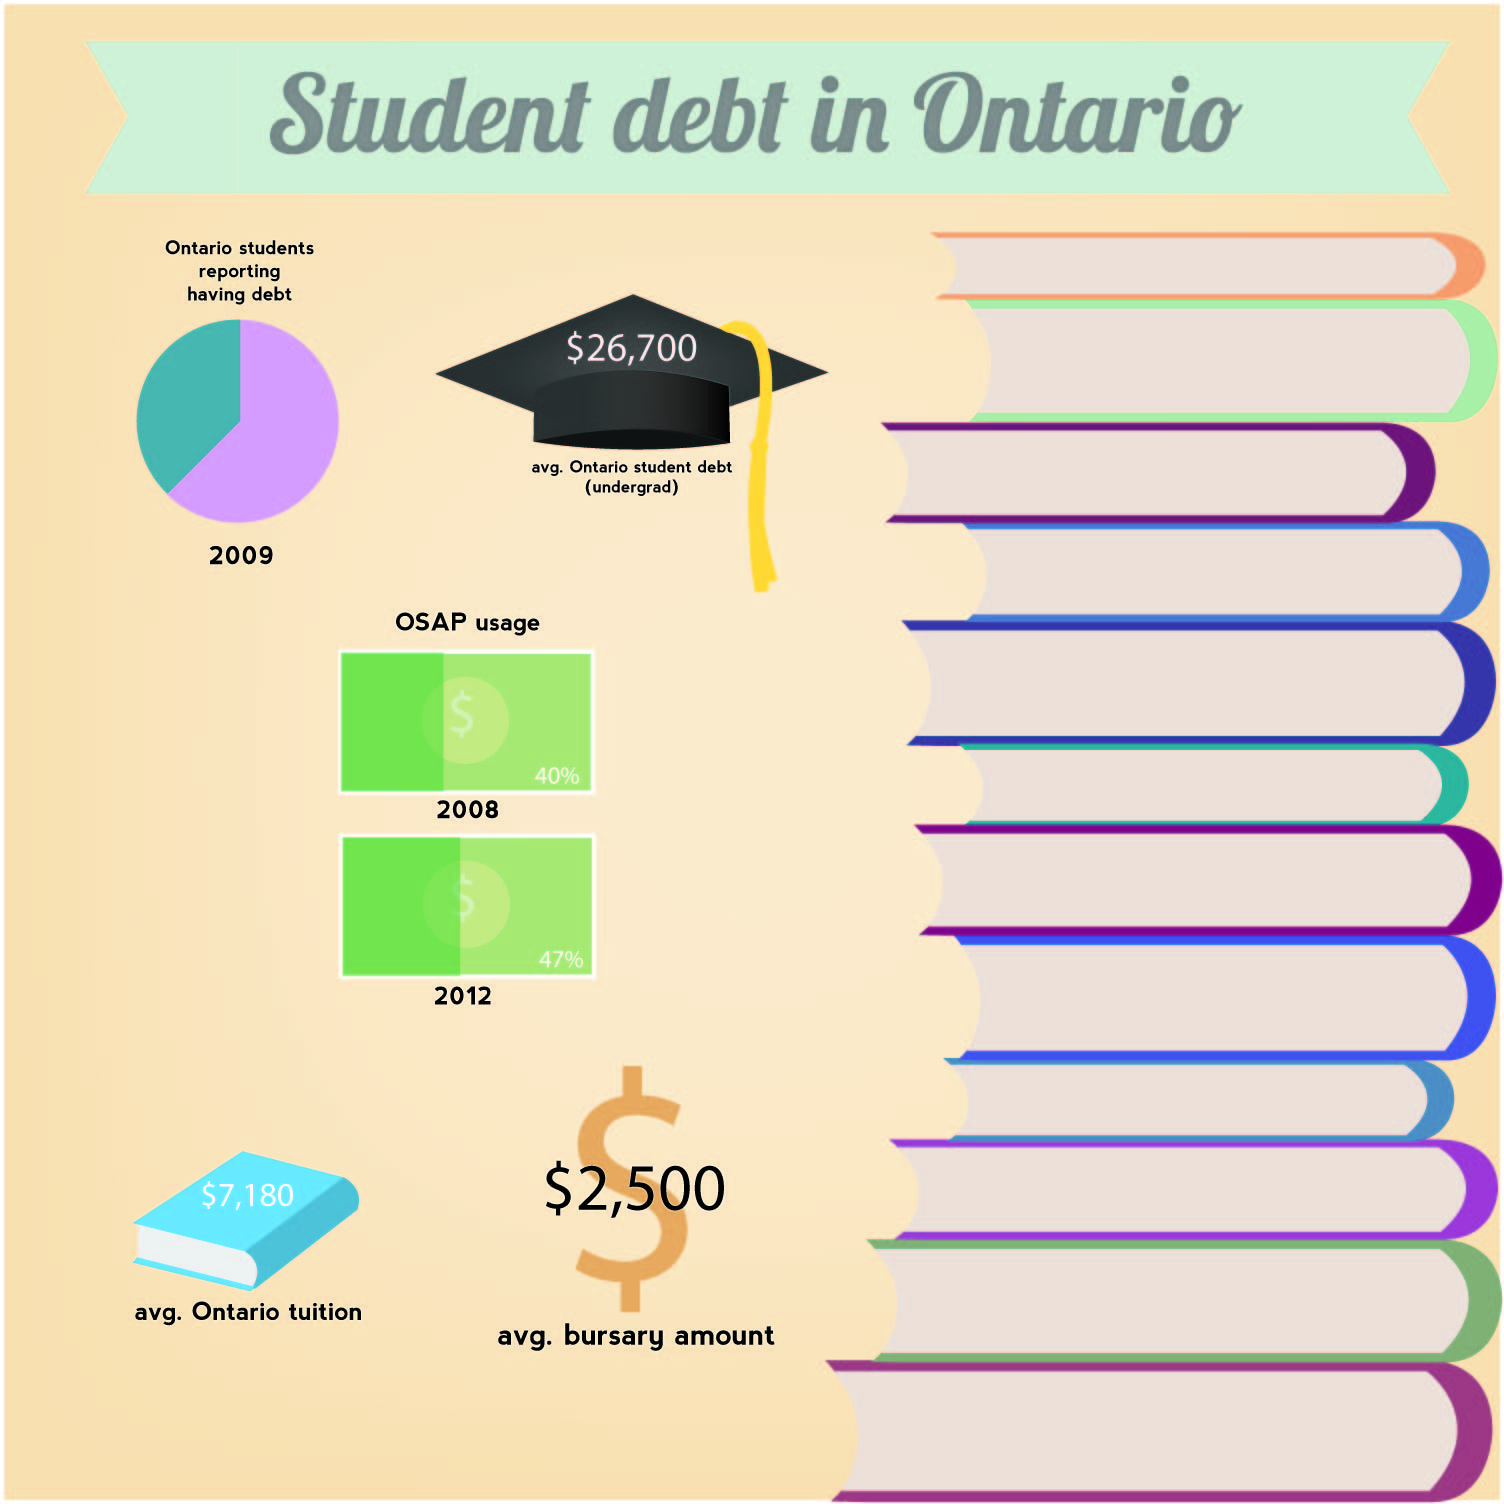 The ramifications of student debt